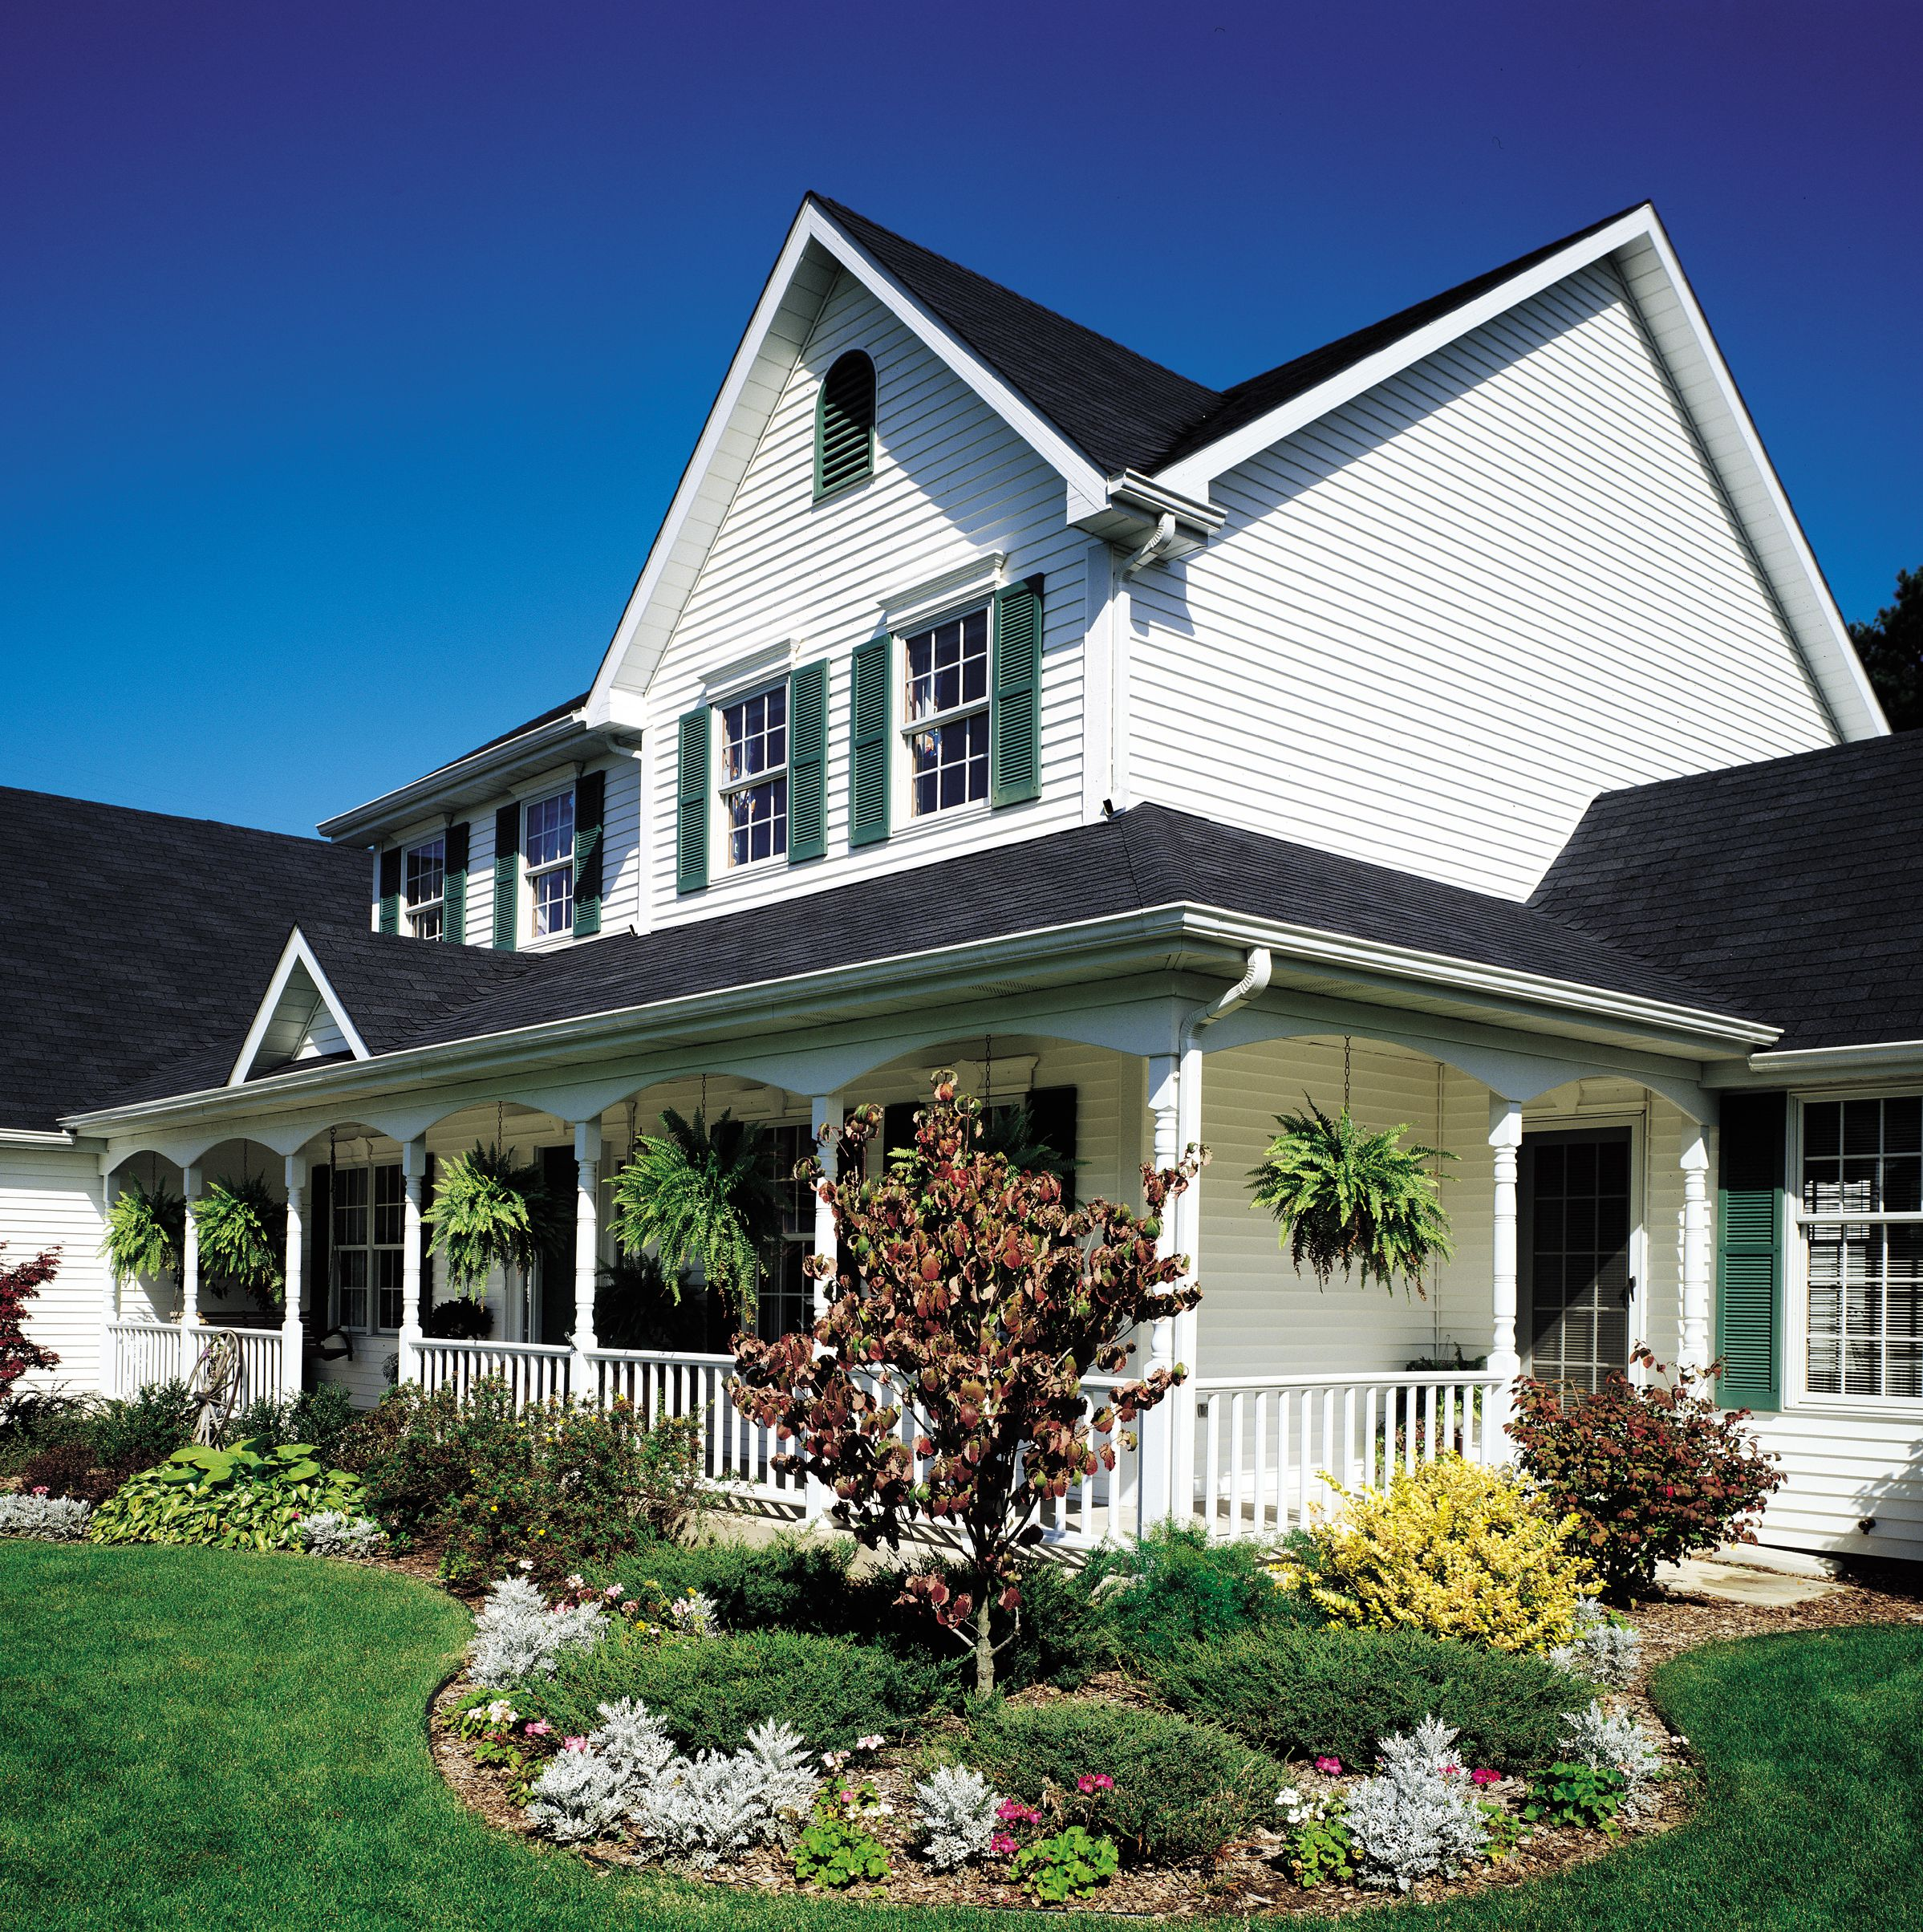 Quality Home Exteriors: Pin By PRO Home 1, Inc. On Siding By PRO Home 1